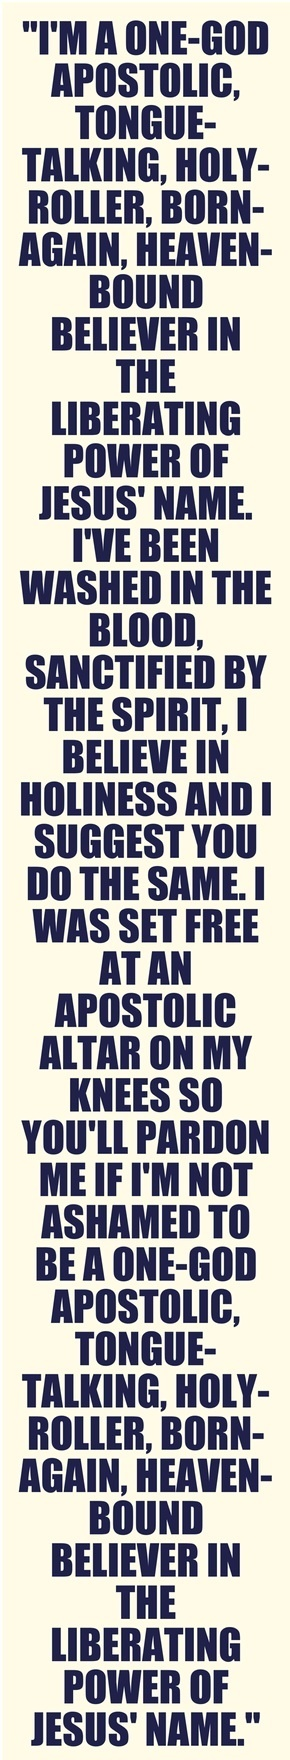 Proud to be an apostolic gal! @annahorner749